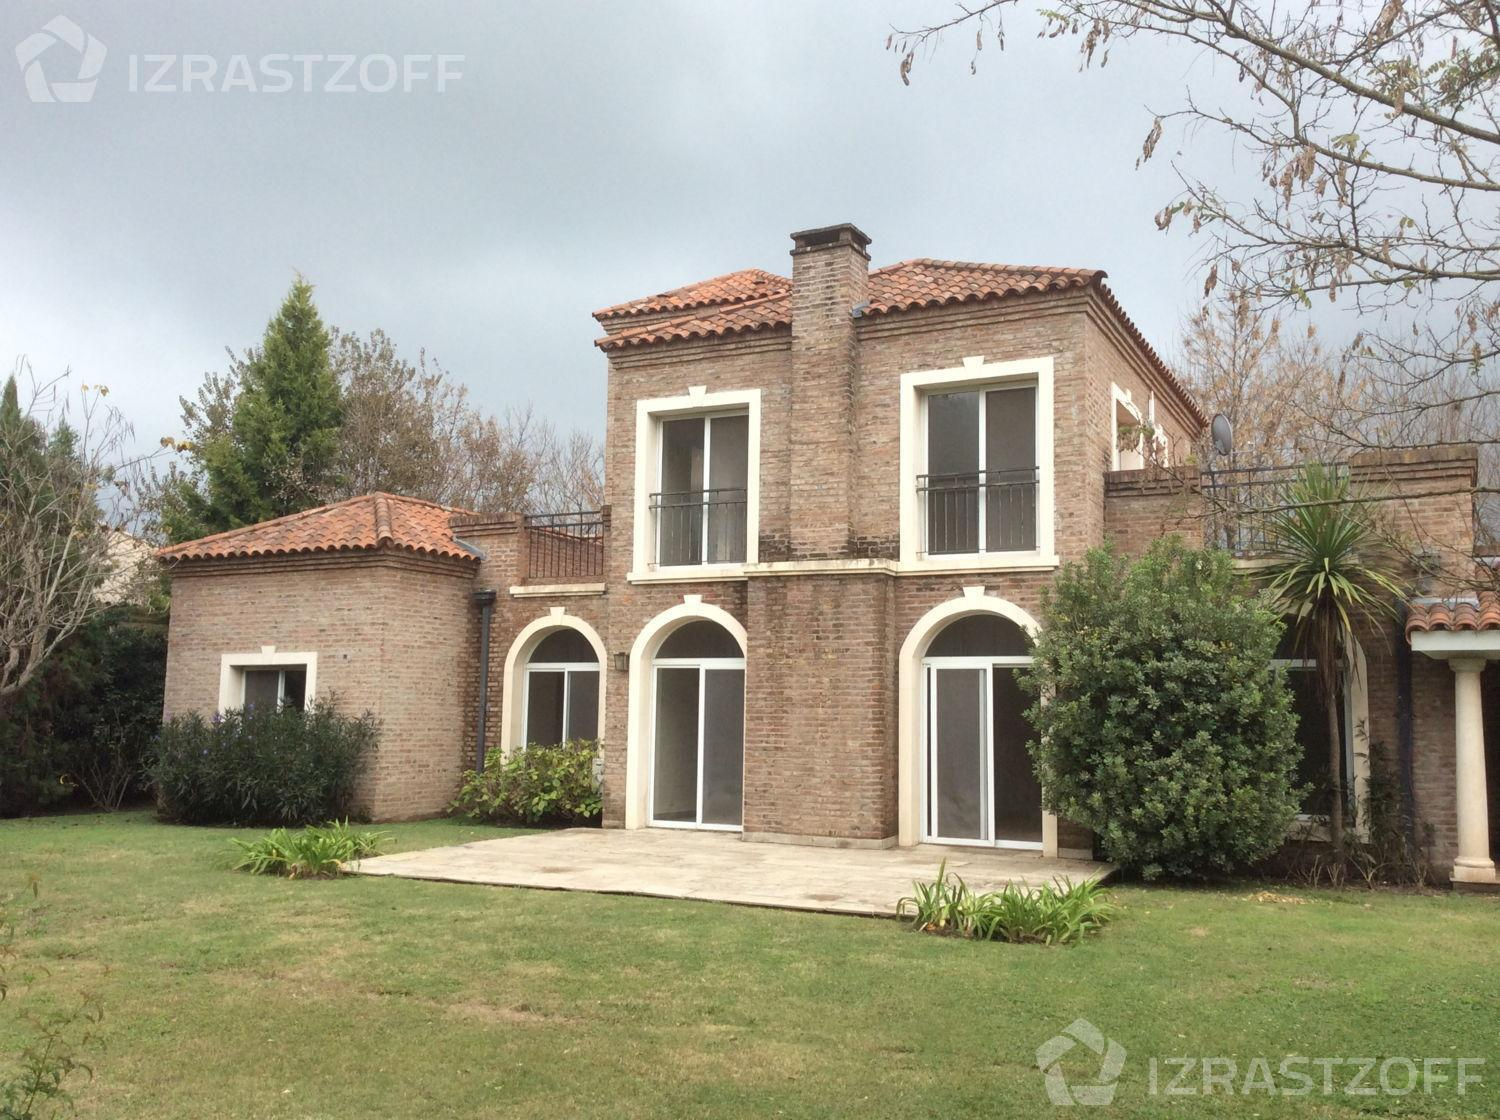 Casa-Alquiler-Martindale C.C-Martindale Country Club